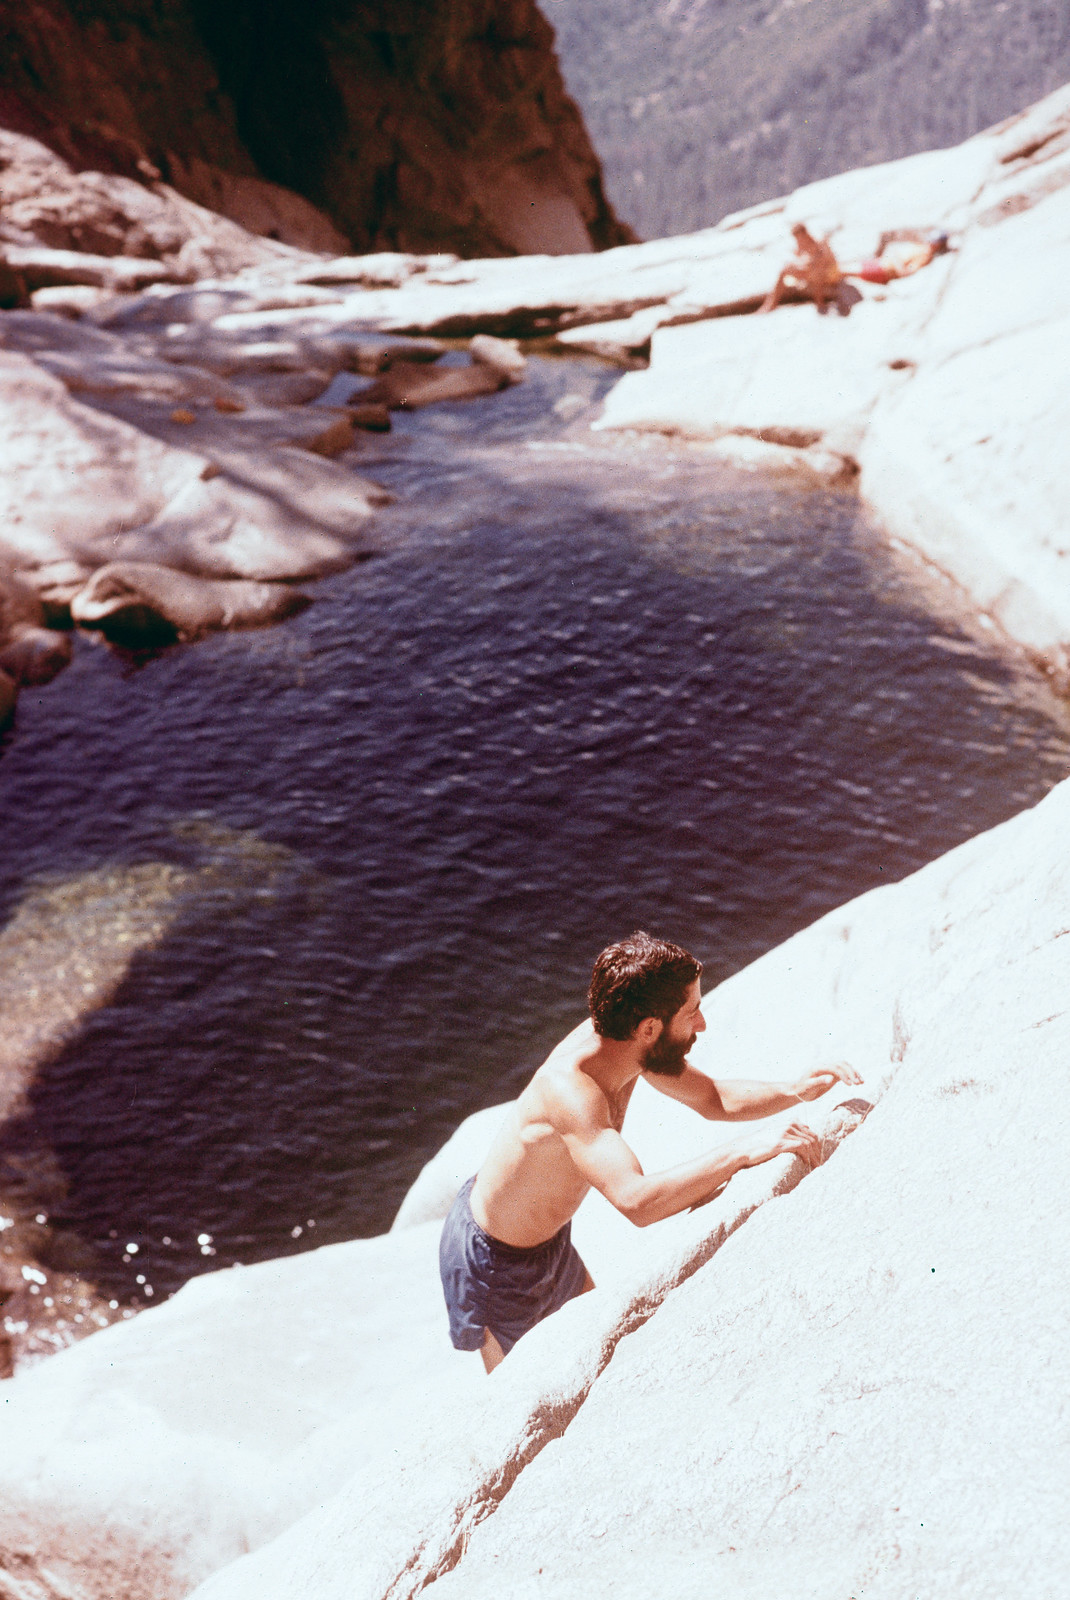 Richard (me) swimming in Yosemite Creek